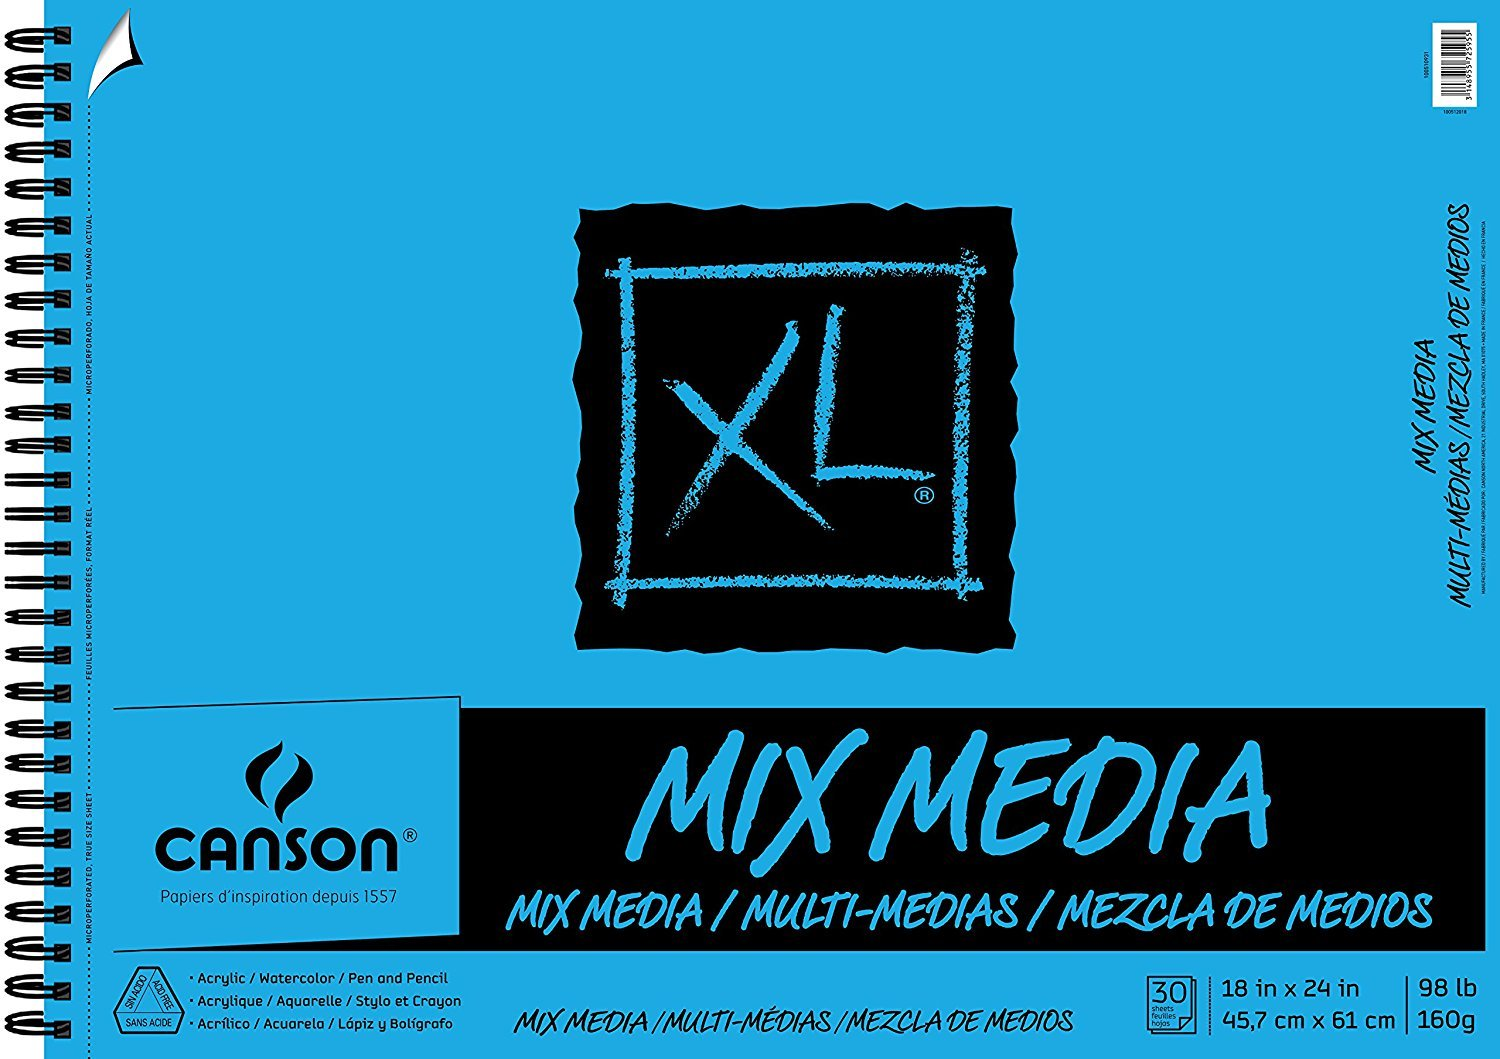 60 Sheets Canson XL Series Mix Media Paper Pad 98 Pound 11 x 14 In Fine Texture Side Wire Bound Heavyweight Heavy Sizing for Wet and Dry Media